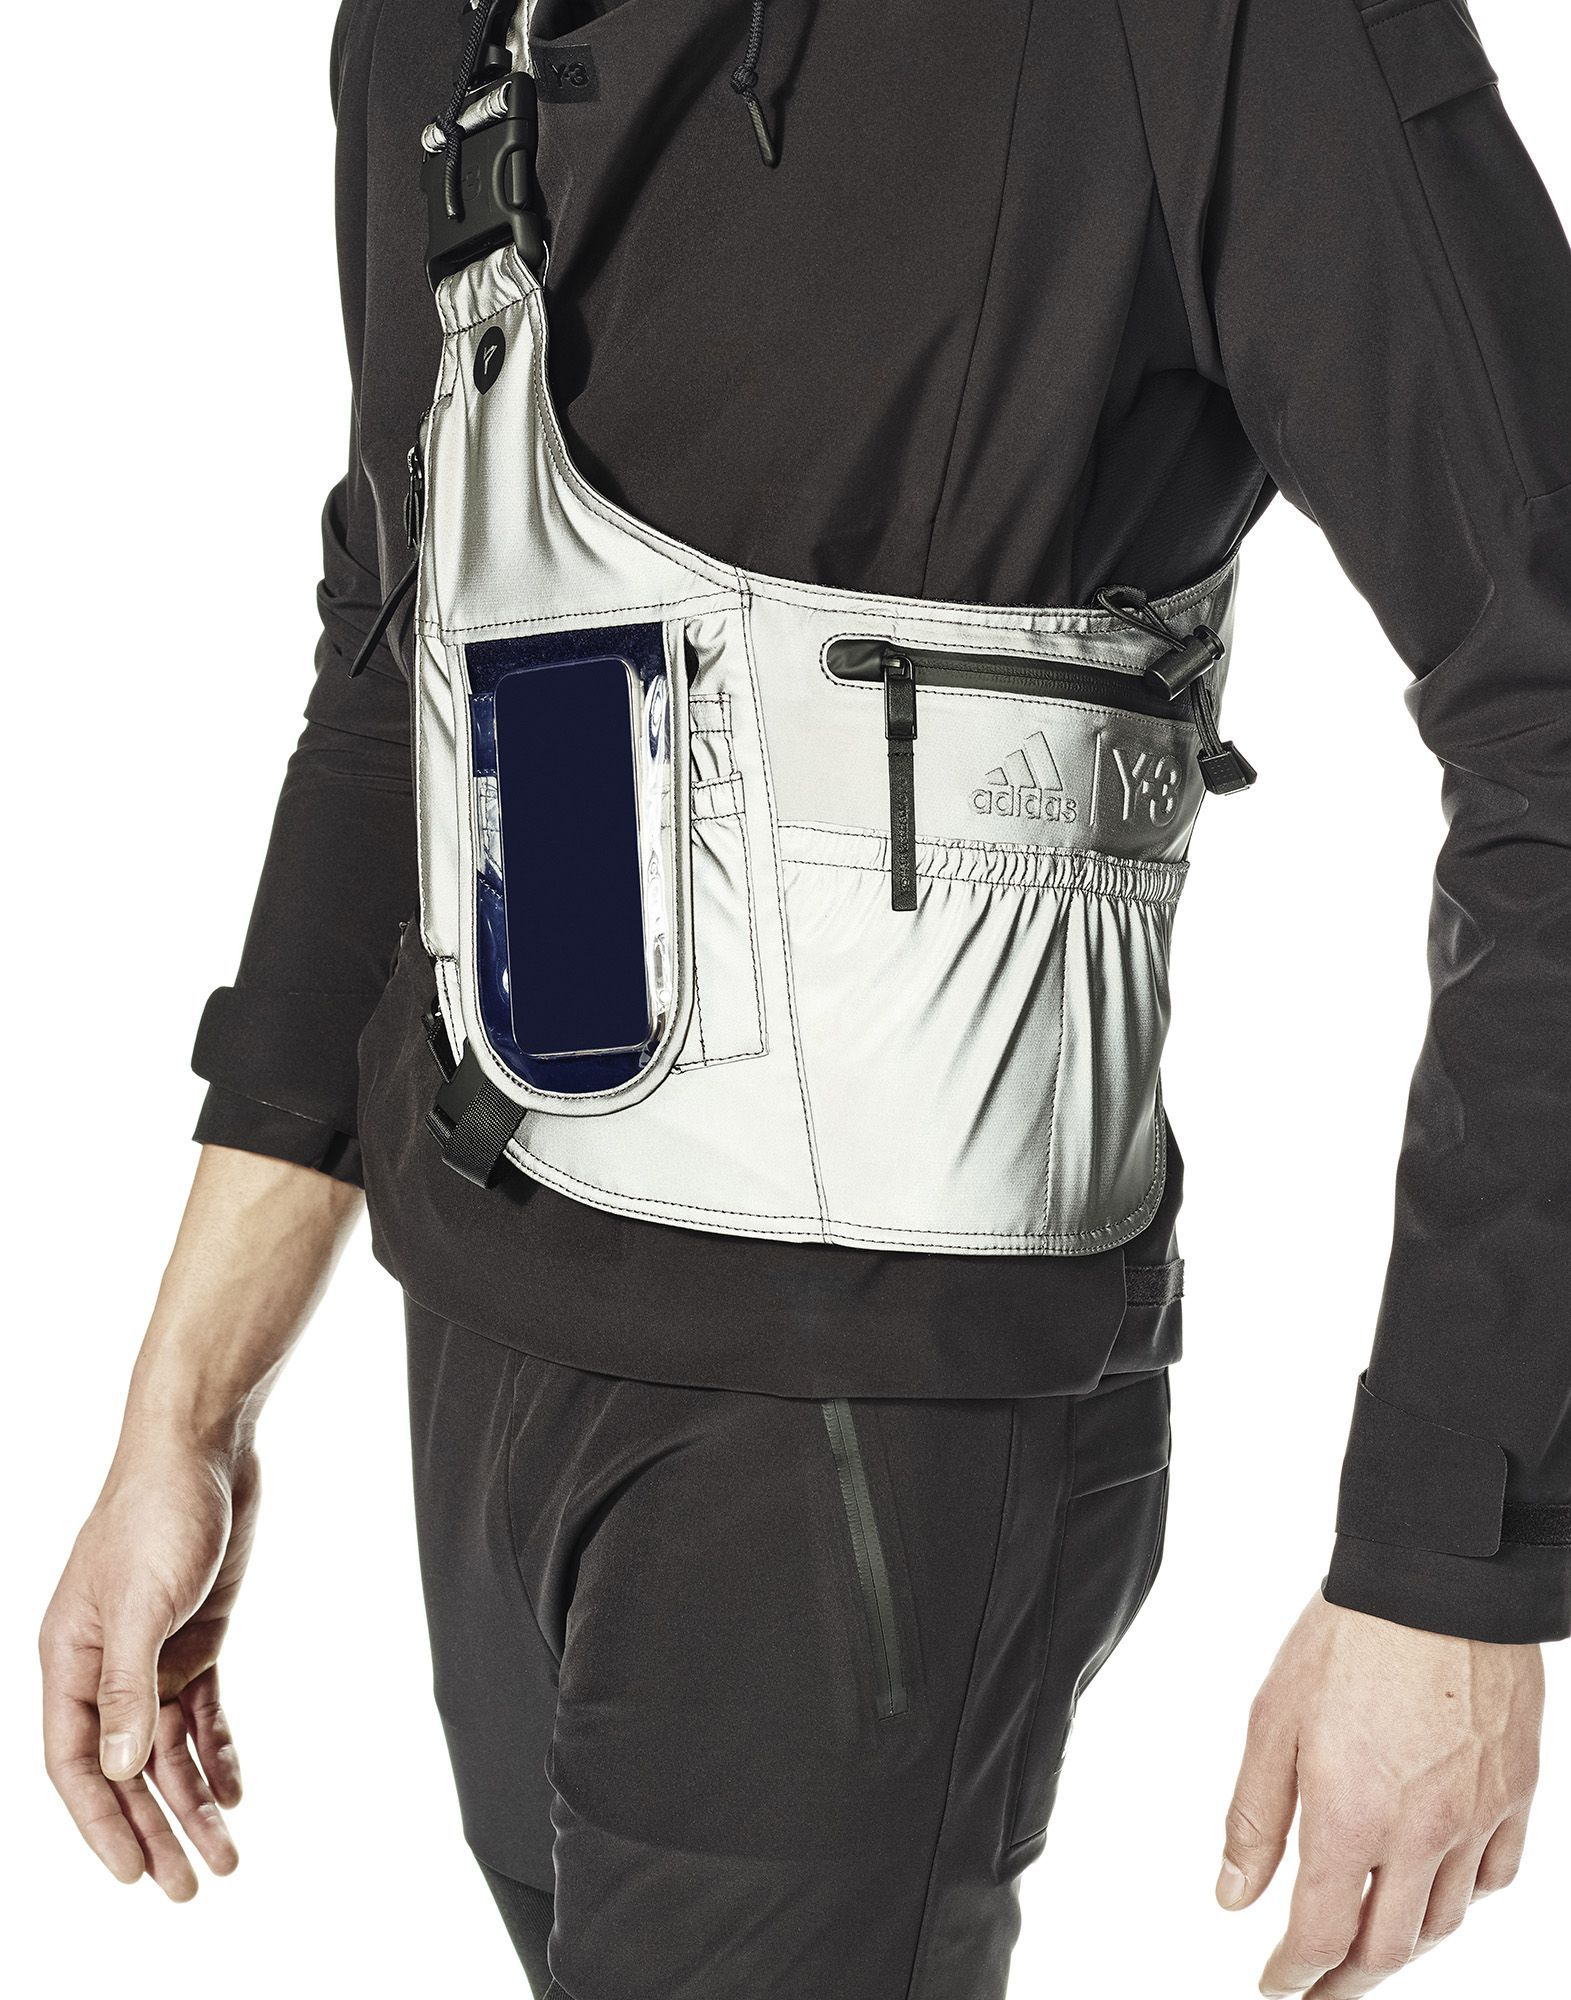 3795ca55a3d6 21st Century. The Future is Now! Y-3 SPORT CROSSBODY BAG TASCHEN unisex Y-3  adidas